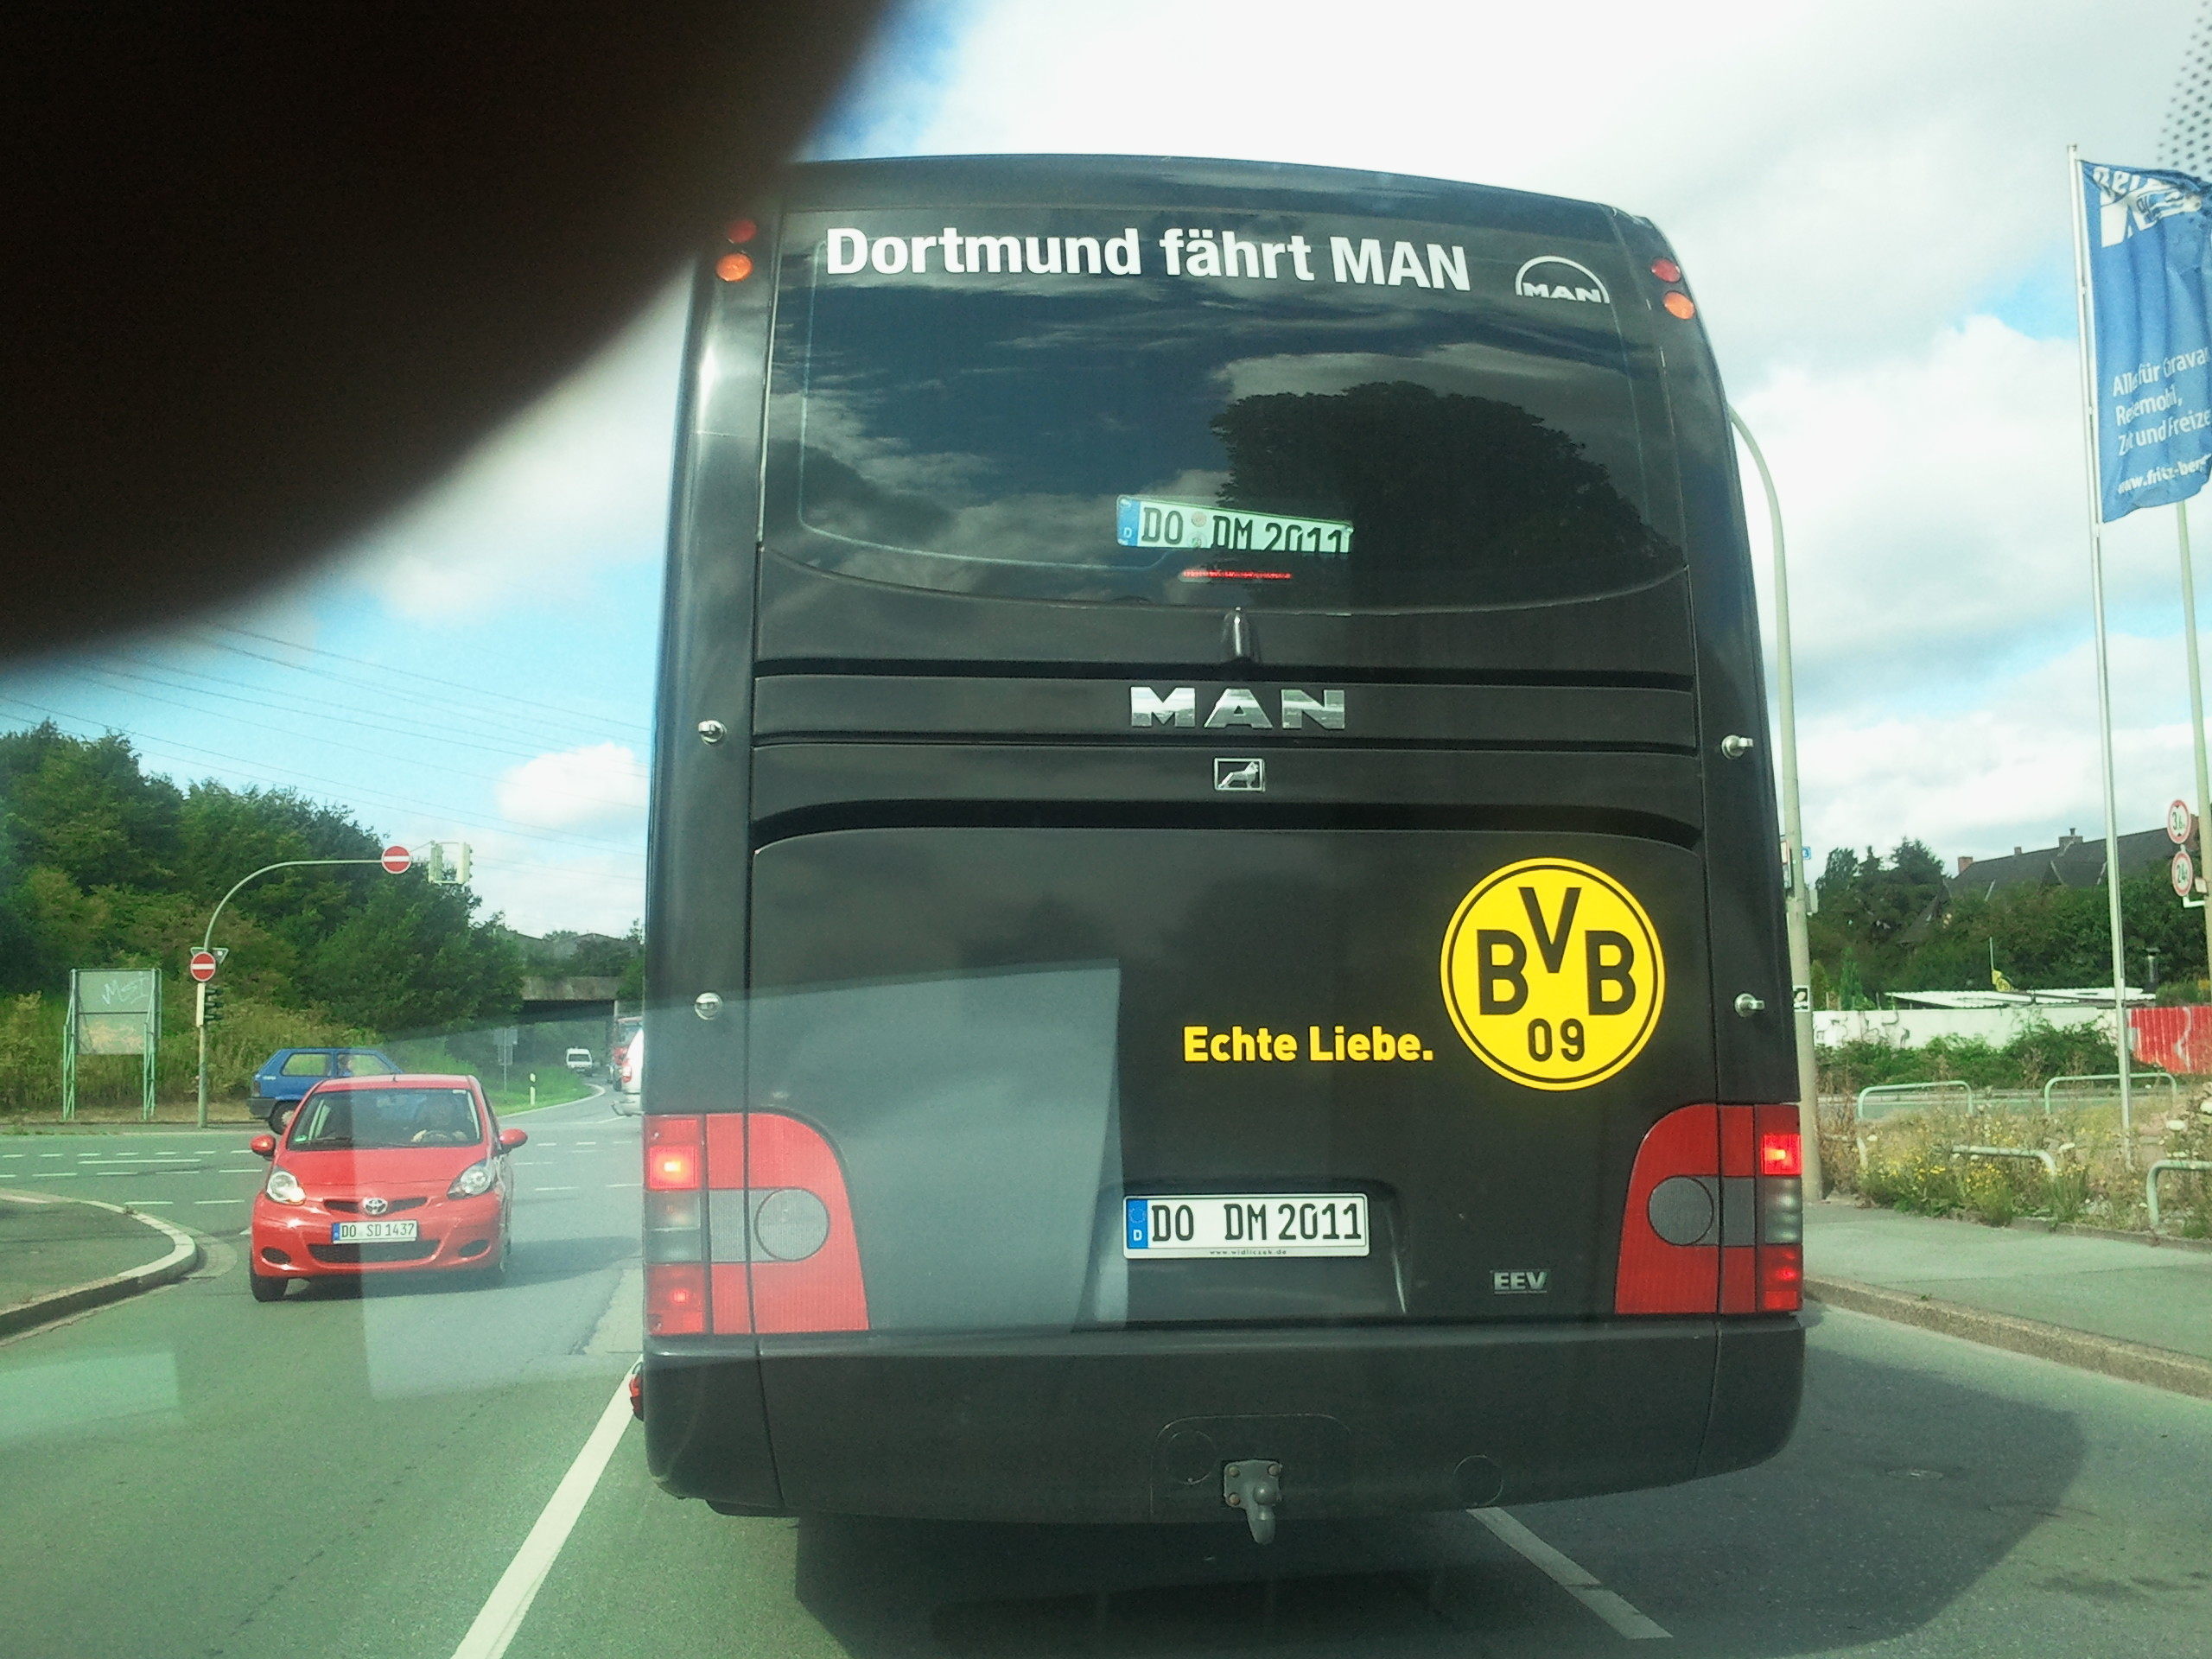 bvb bvb09 bus nummernschild bitpiloten blog. Black Bedroom Furniture Sets. Home Design Ideas